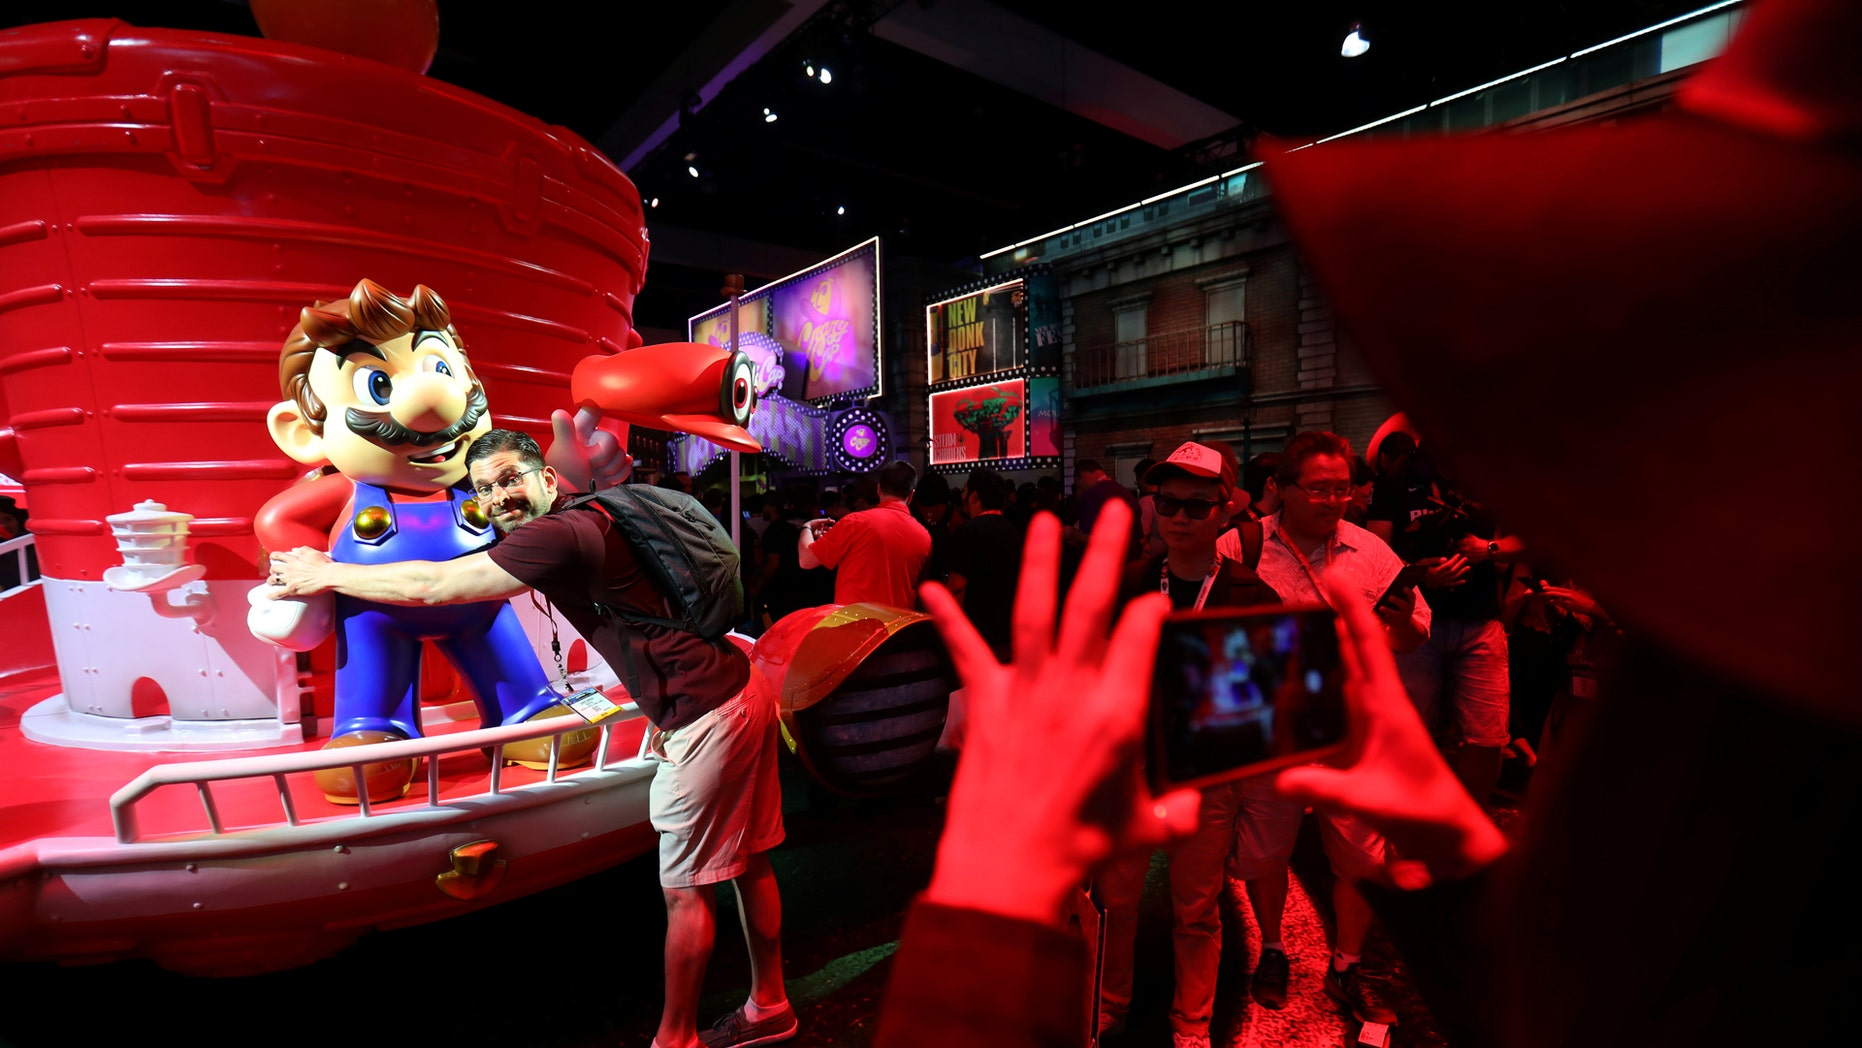 An attendee hugs a statue of Super Mario at the E3 2017 Electronic Entertainment Expo in Los Angeles, California, U.S. June 13, 2017. (REUTERS/ Mike Blake)